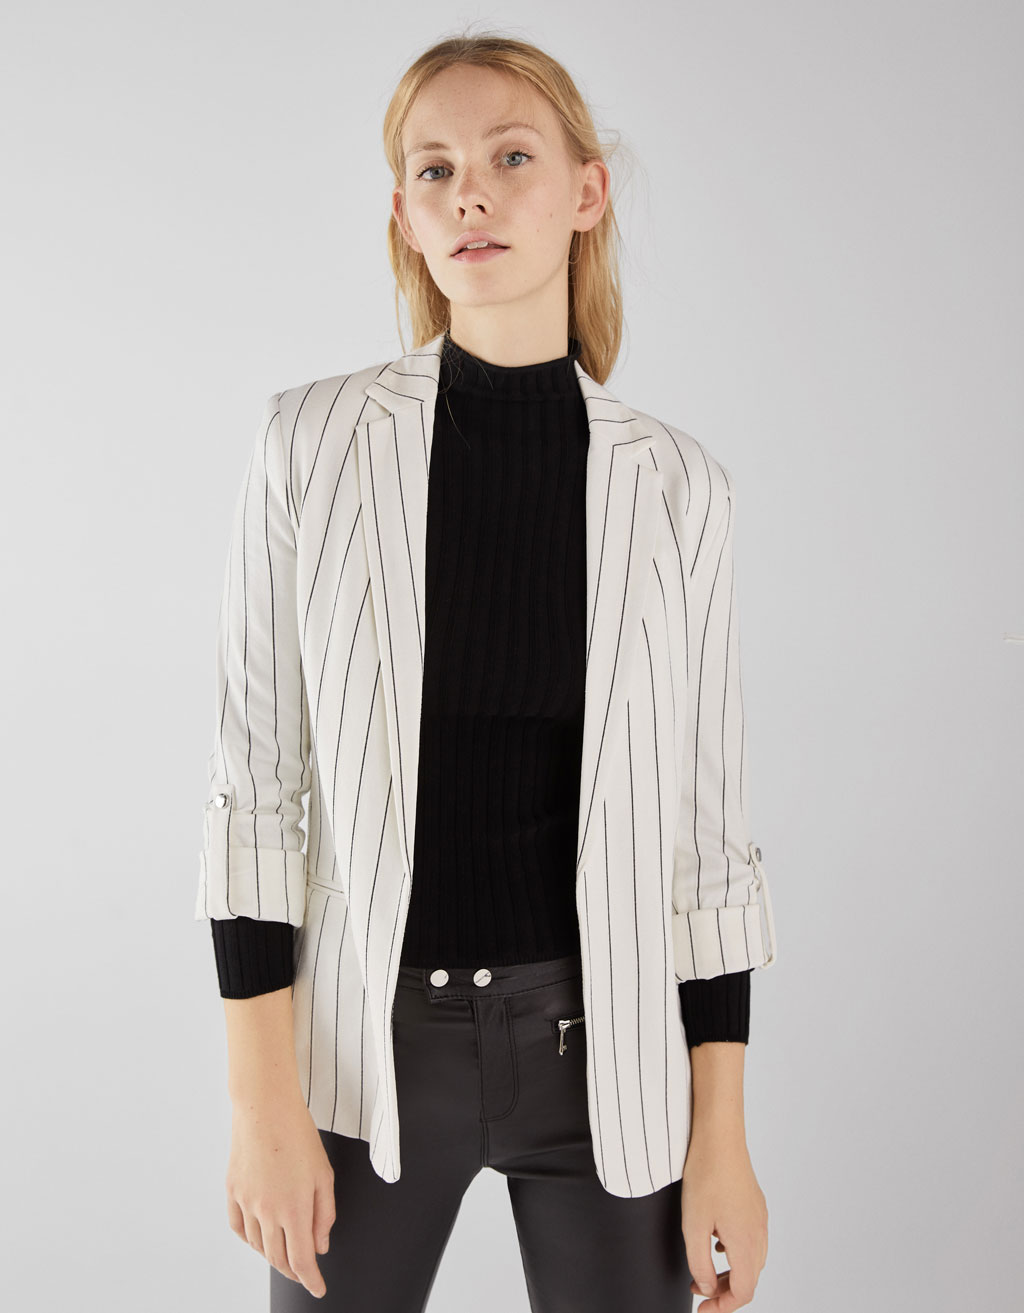 Flowing blazer with rolled up sleeves